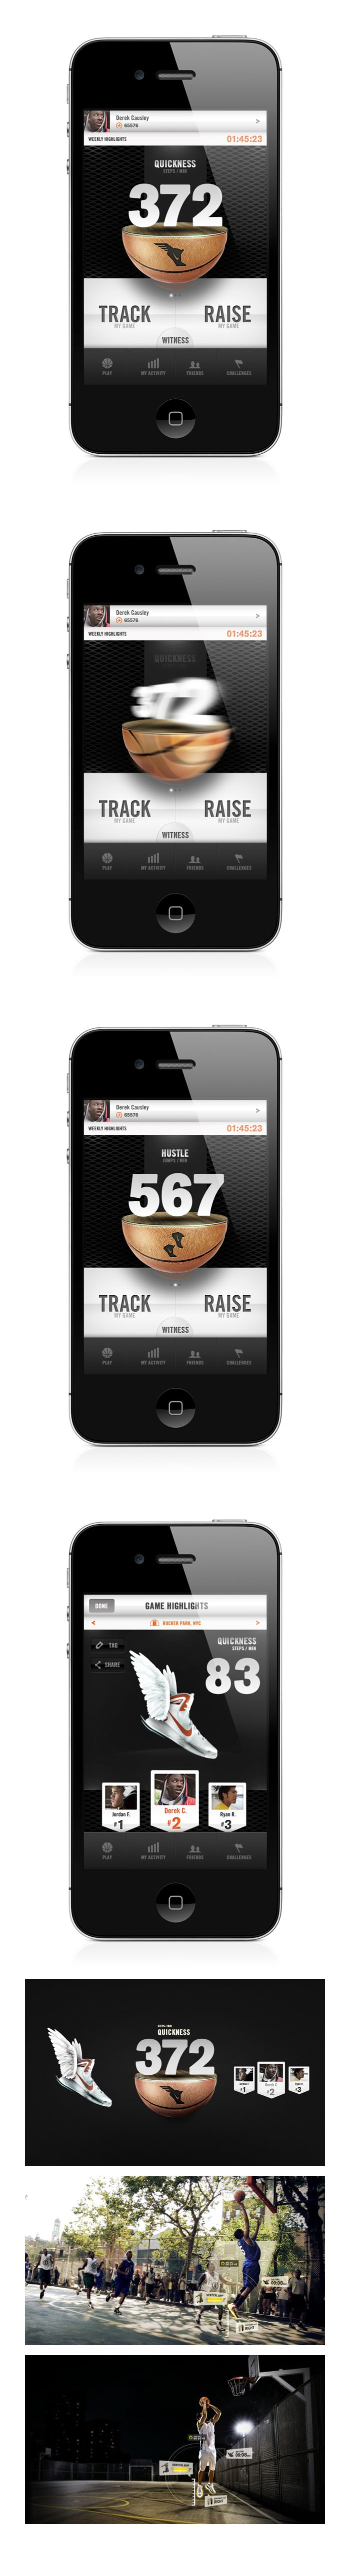 #Nike+ #Basketball #Mobile #App